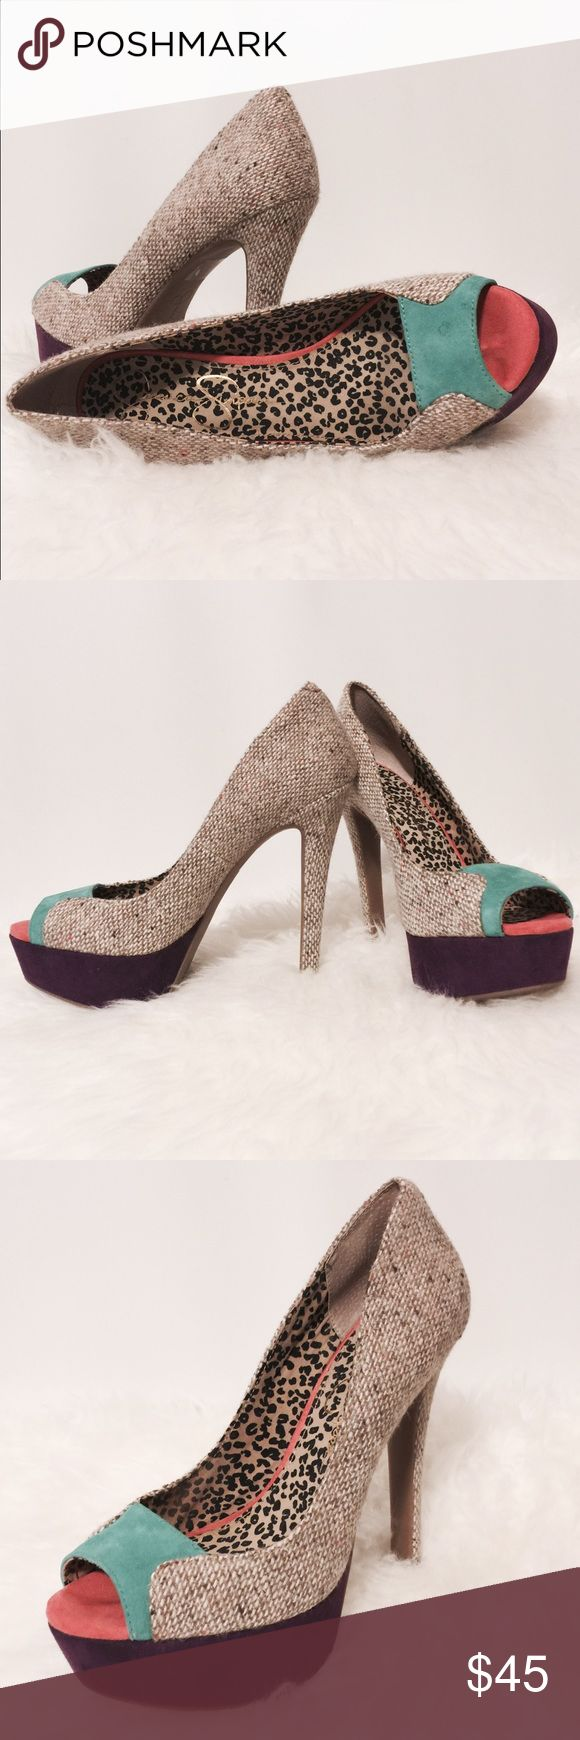 "⭐️ Jessica Simpson Multi Colored Platform Heels Sexy!!! Suede & Jute heels. Plum platform, teal accent, jute body and coral toe bed lined in animal print. Worn twice and really comfortable. 1 1/2"" platform 5 1/2"" heels Jessica Simpson Shoes Platforms"